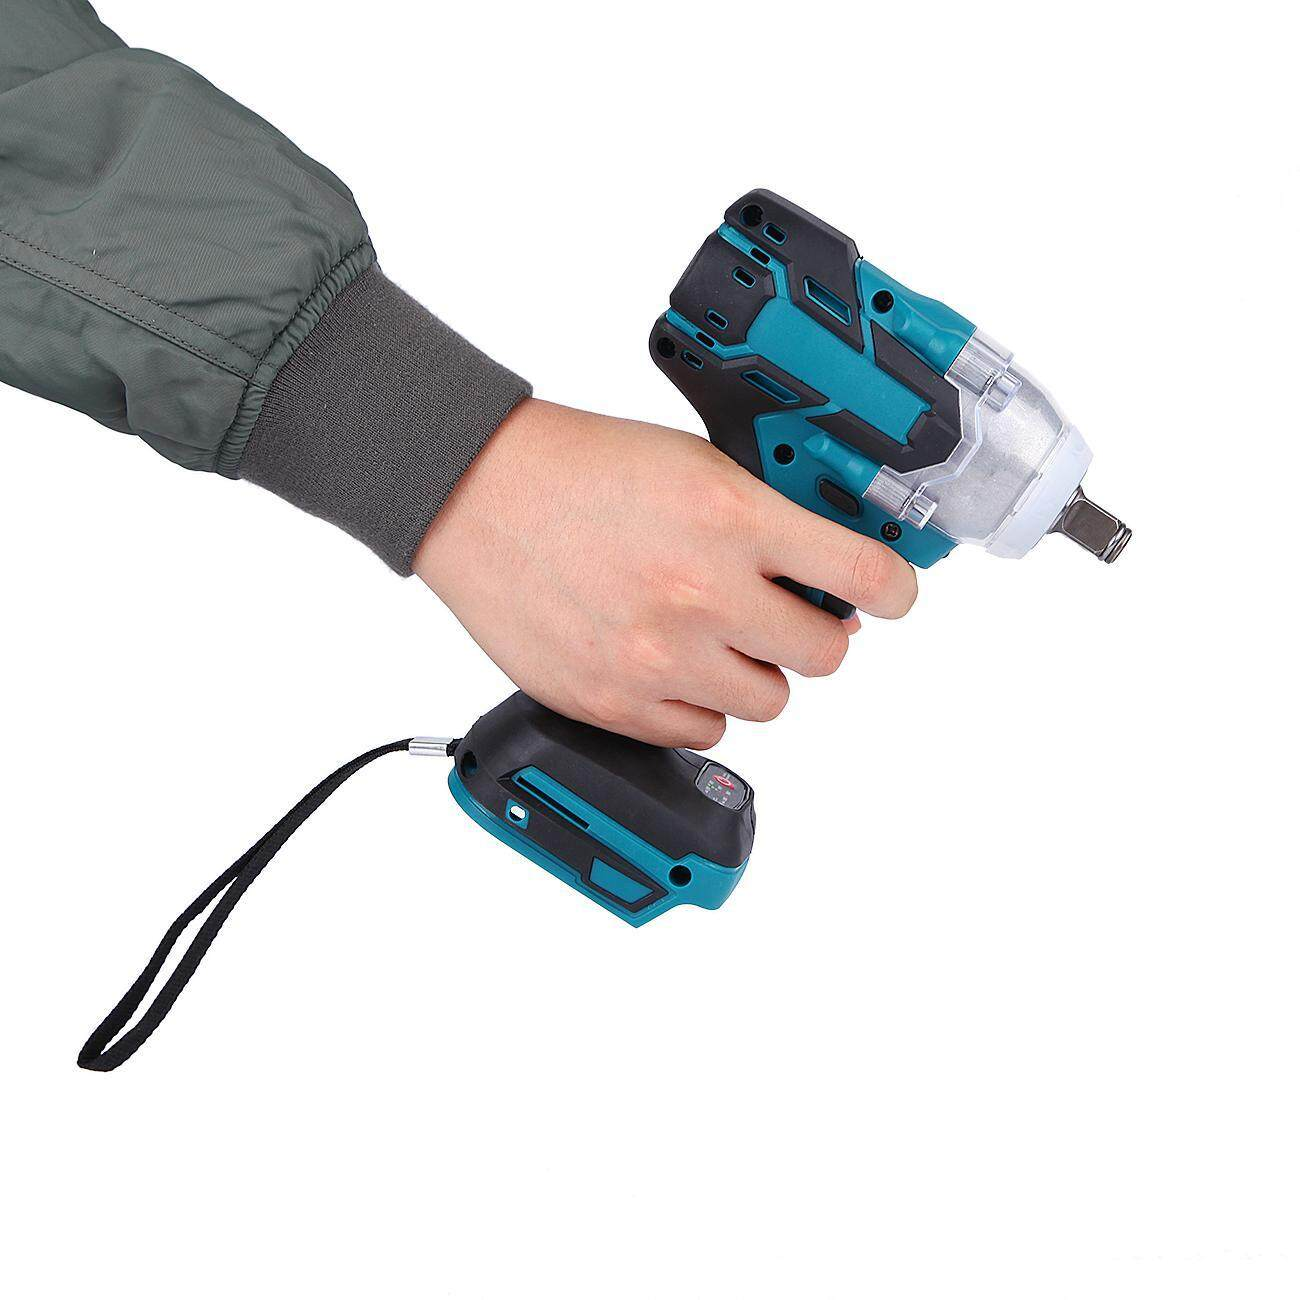 【Drill Bit Hand Tools】Torque Impact Wrench Brushless Cordless Replacement For Makita Battery DTW285Z